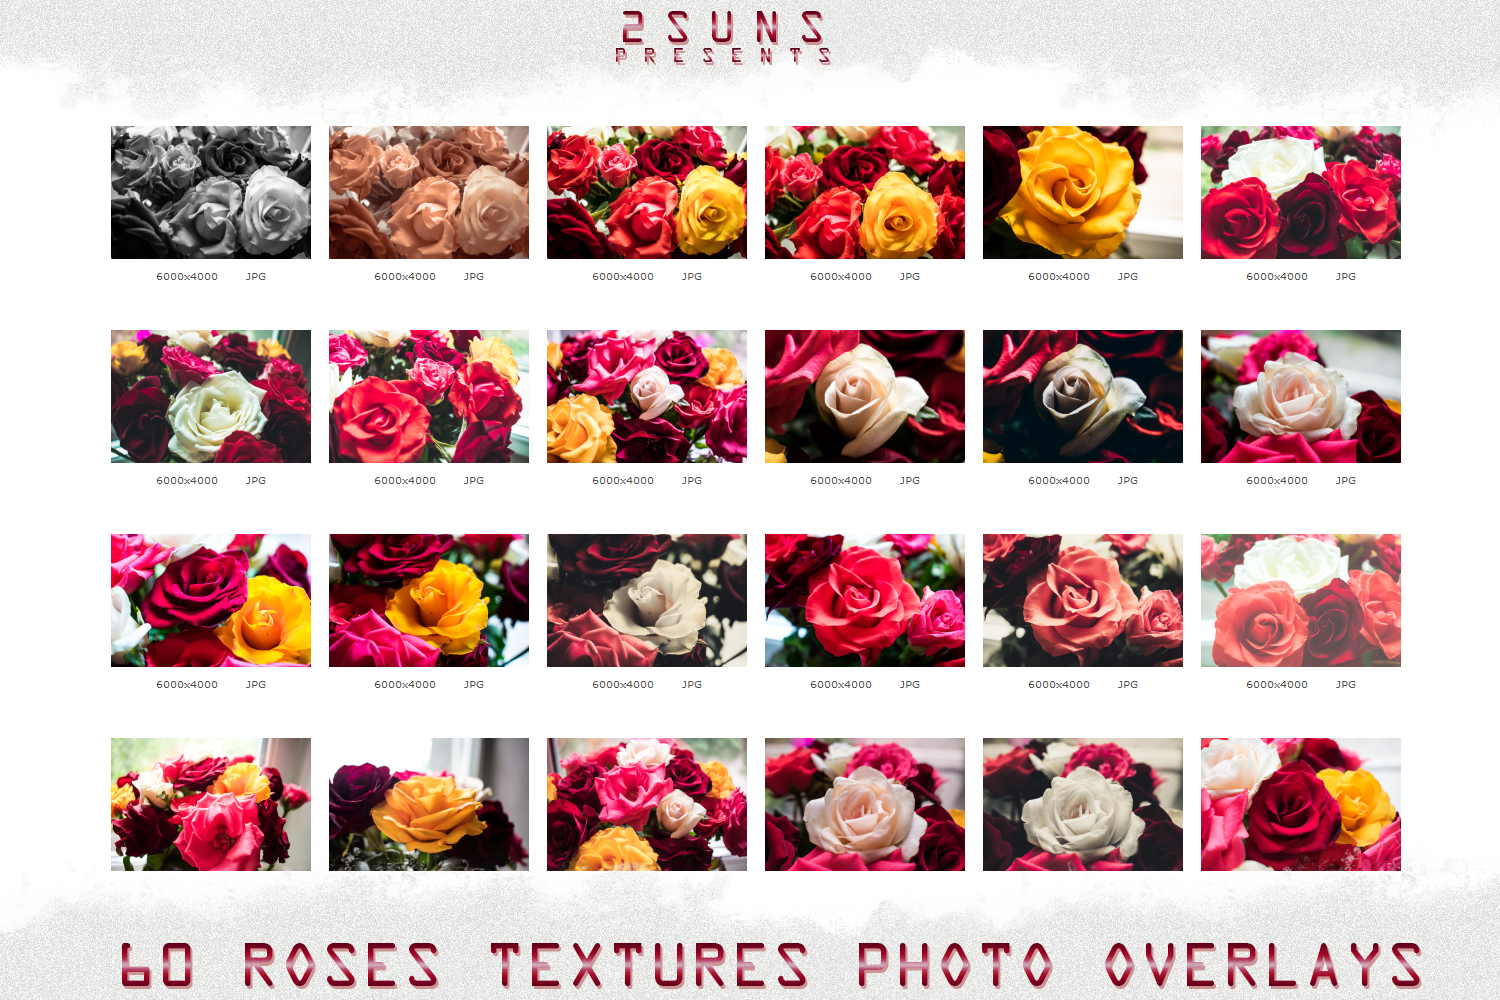 image relating to Printable Textures named Down load photograph overlays purple rose petals printable textures